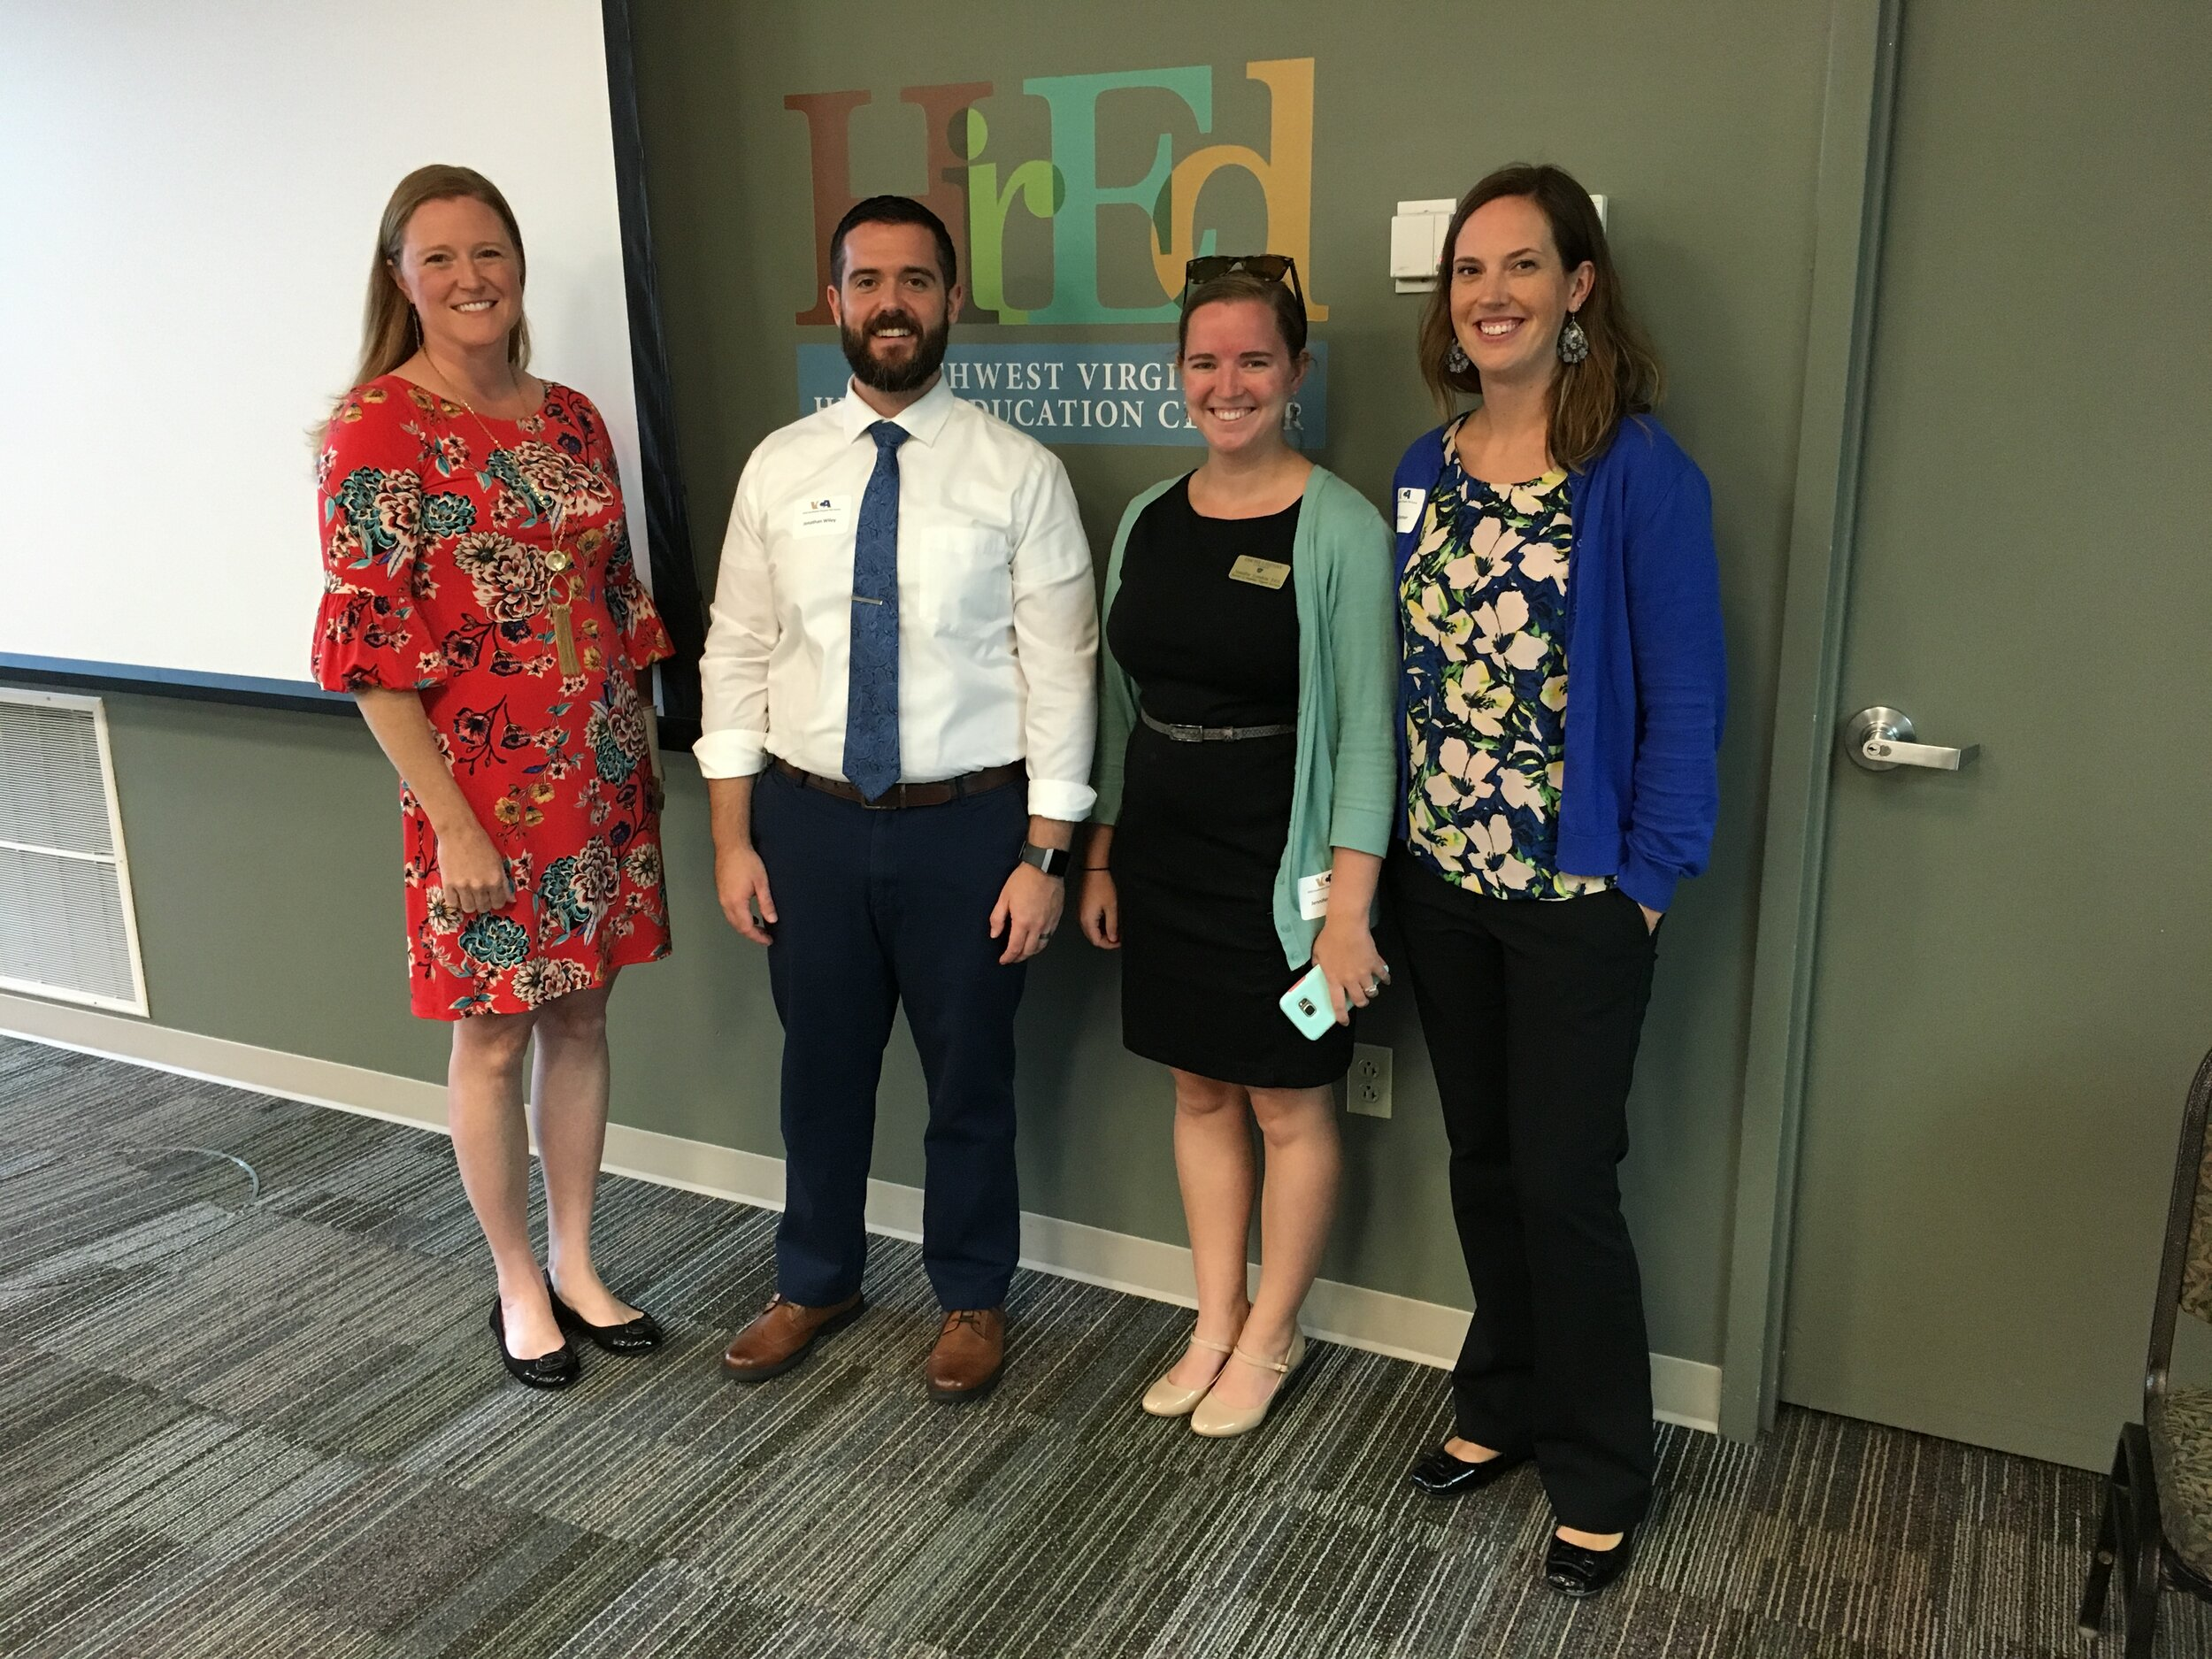 Fall Forum workshop presenters (from left): Dr. Carrie Sanders, Jon Wiley, Jennifer Condon, Dr. Laura Farmer (not pictured: Dr. Theresa Burris)